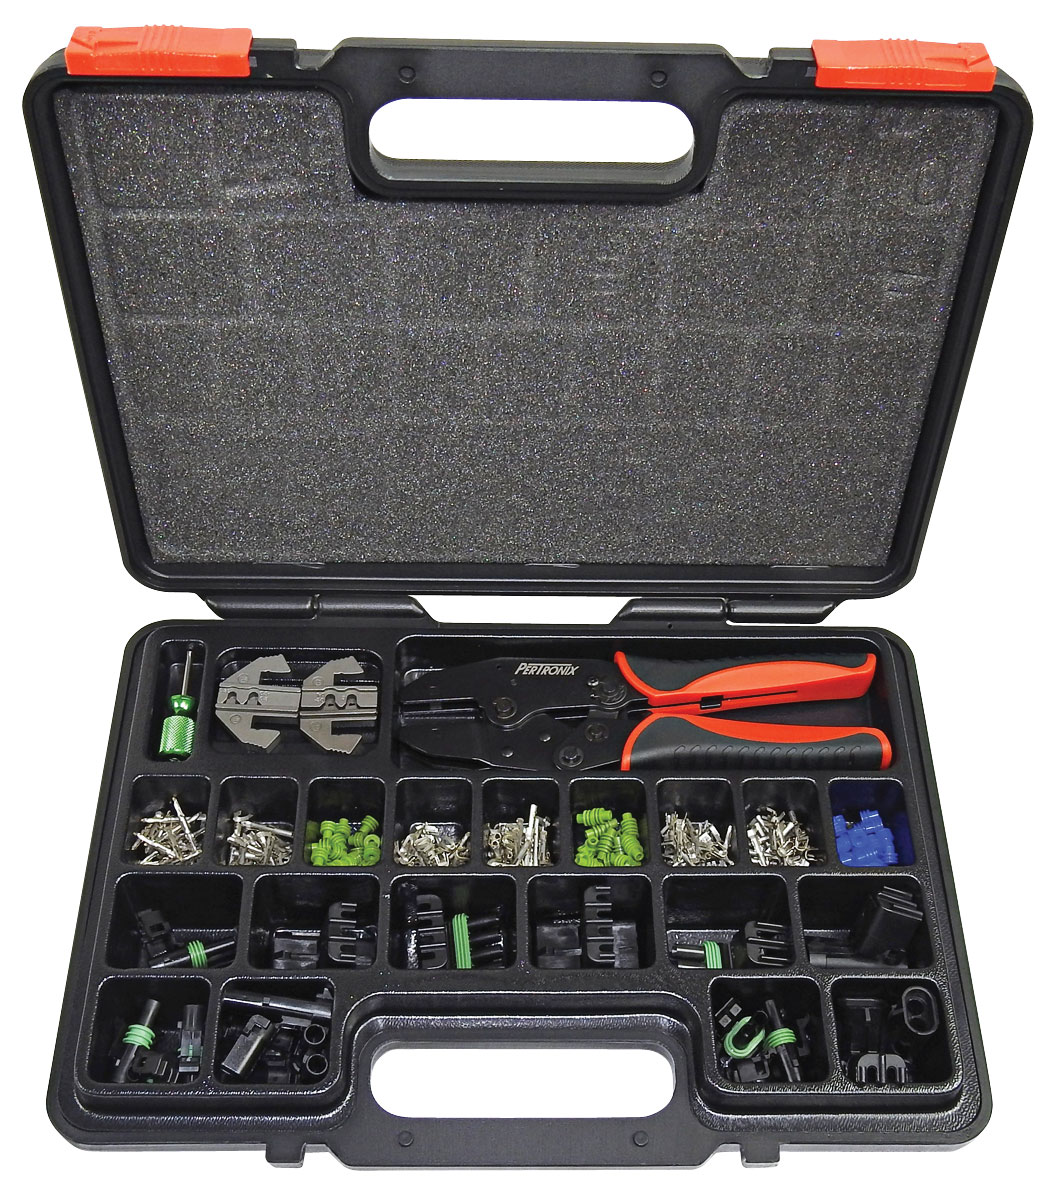 Photo of Ratchet Crimping Tool tool & connector set, 220 pc